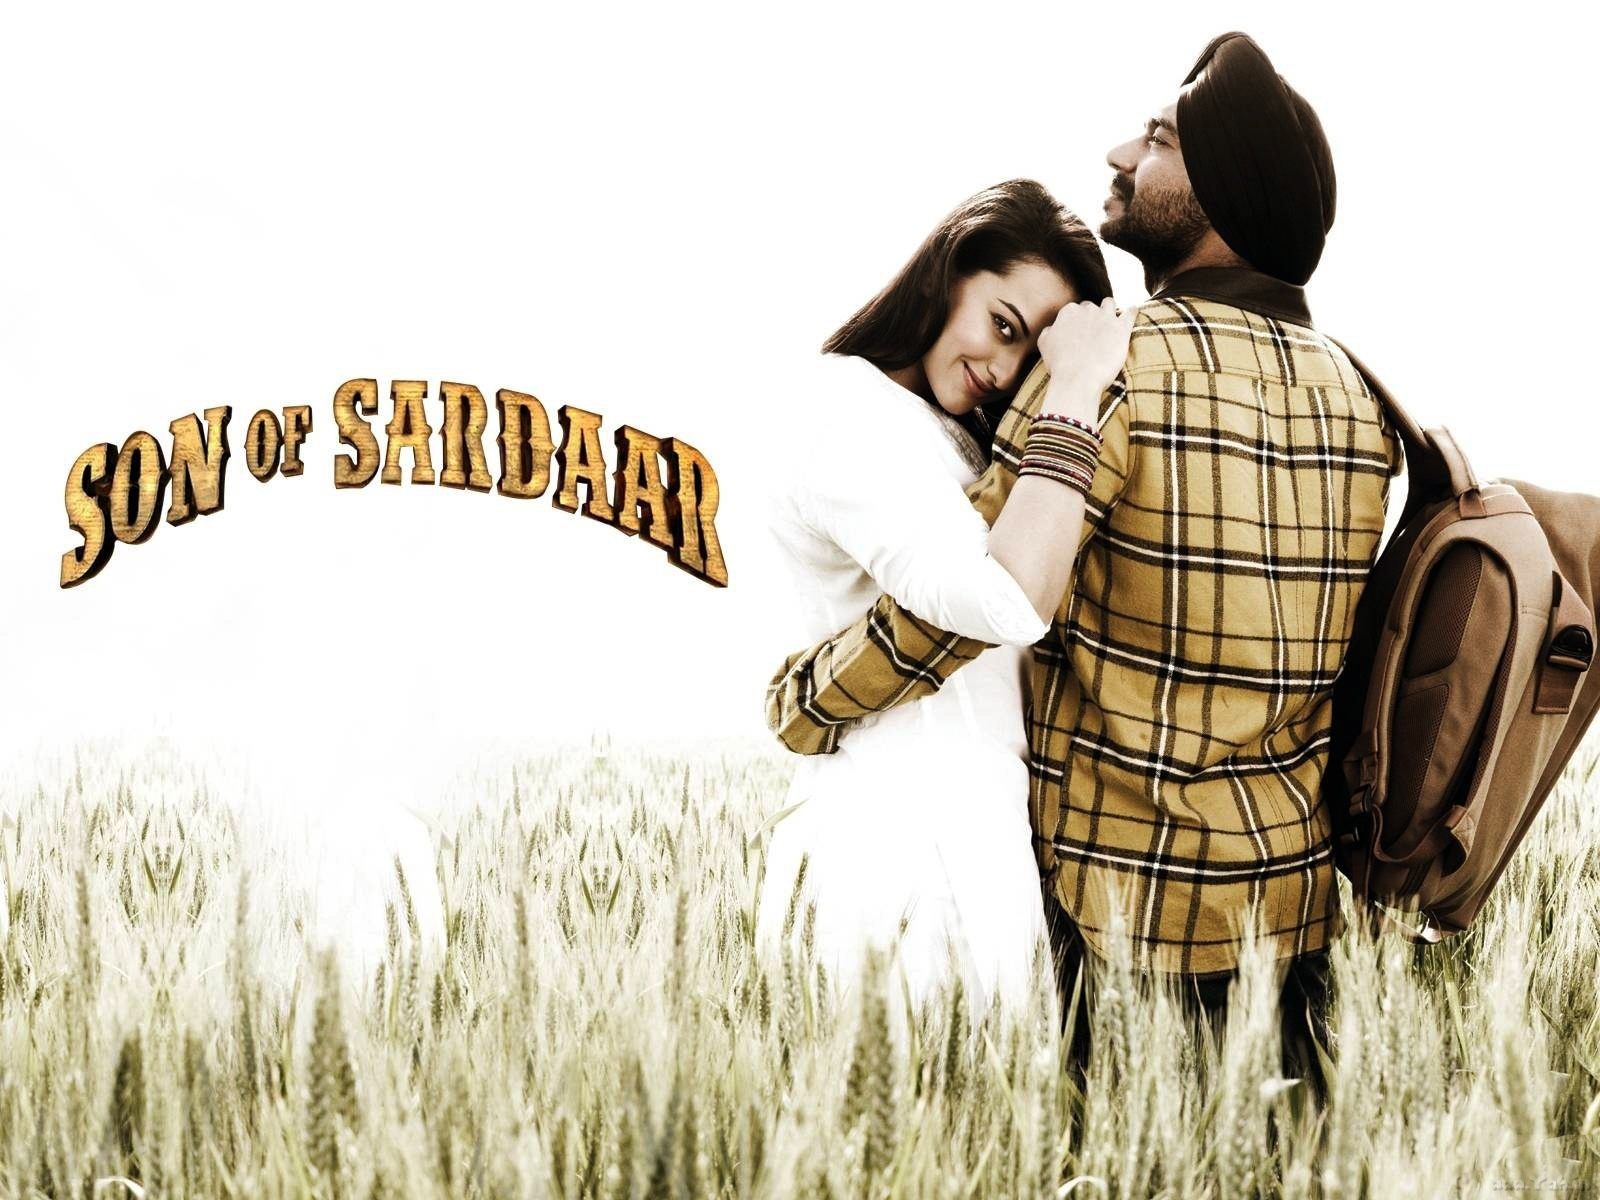 Son Of Sardaar Poster, Stills and Cast and Crew - Image ...